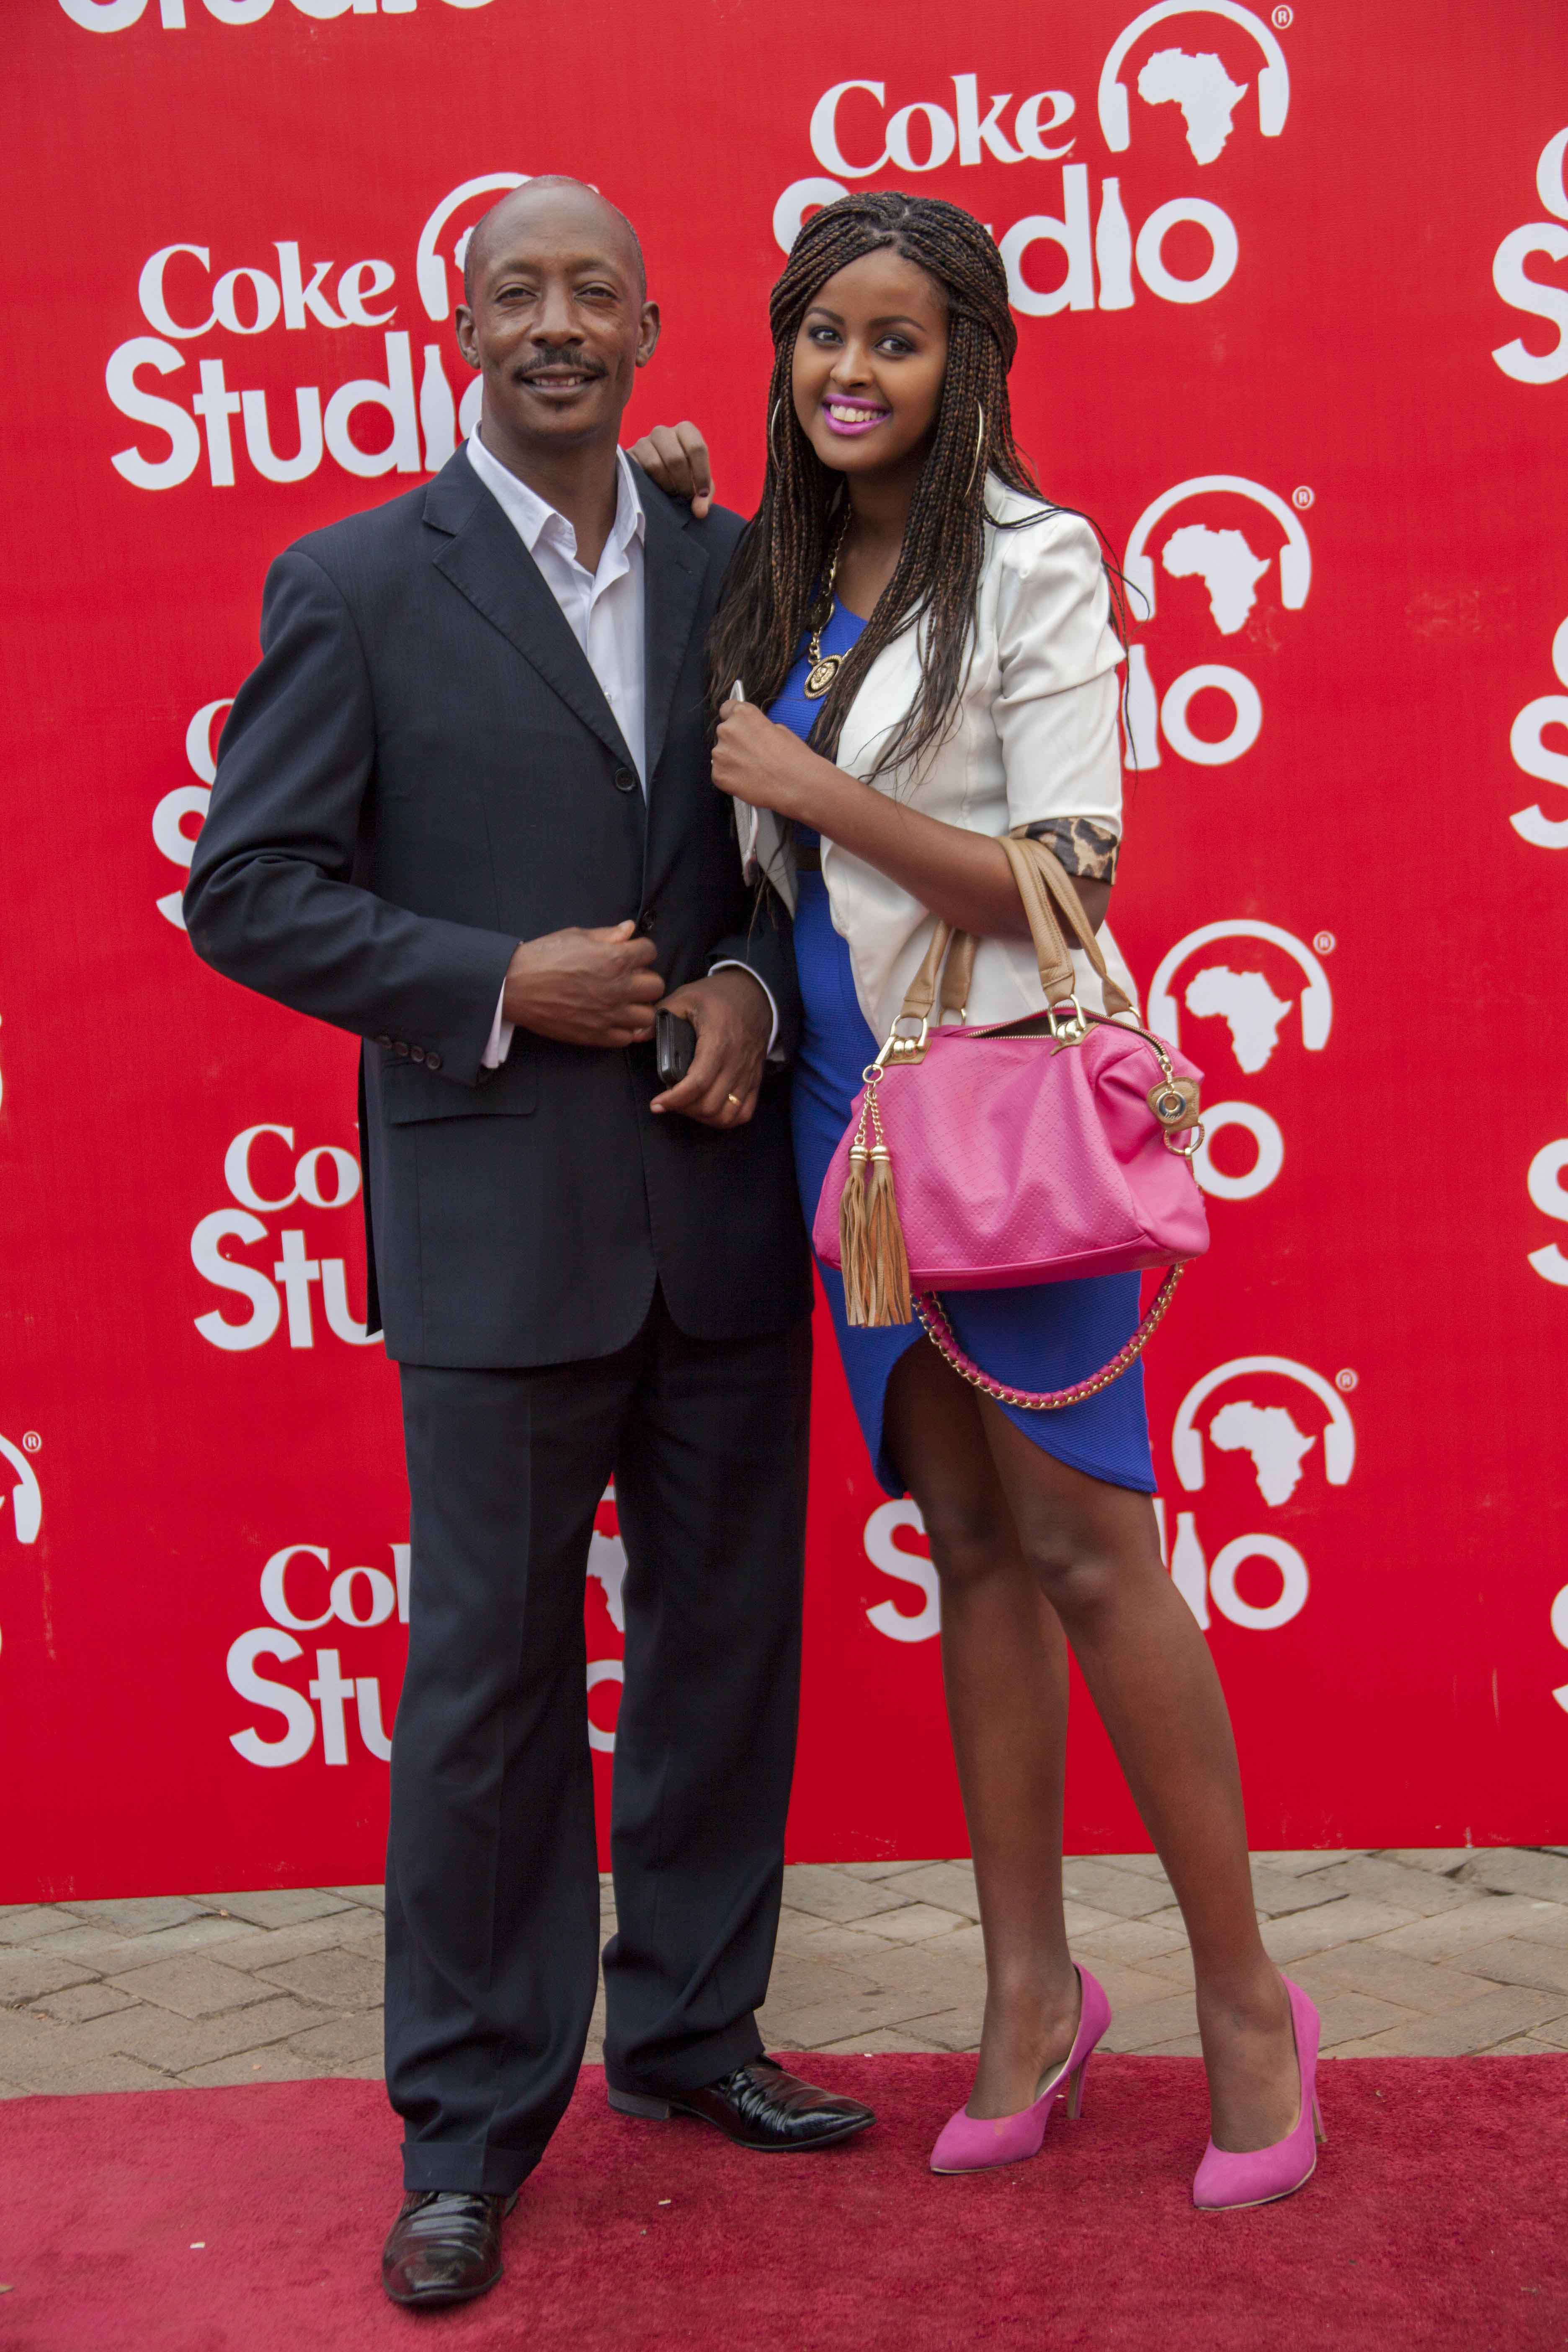 Chris Kirwa and Miss Amina of Capital FM - From Burale to Jalango, here are event MCs raking in millions in Kenya